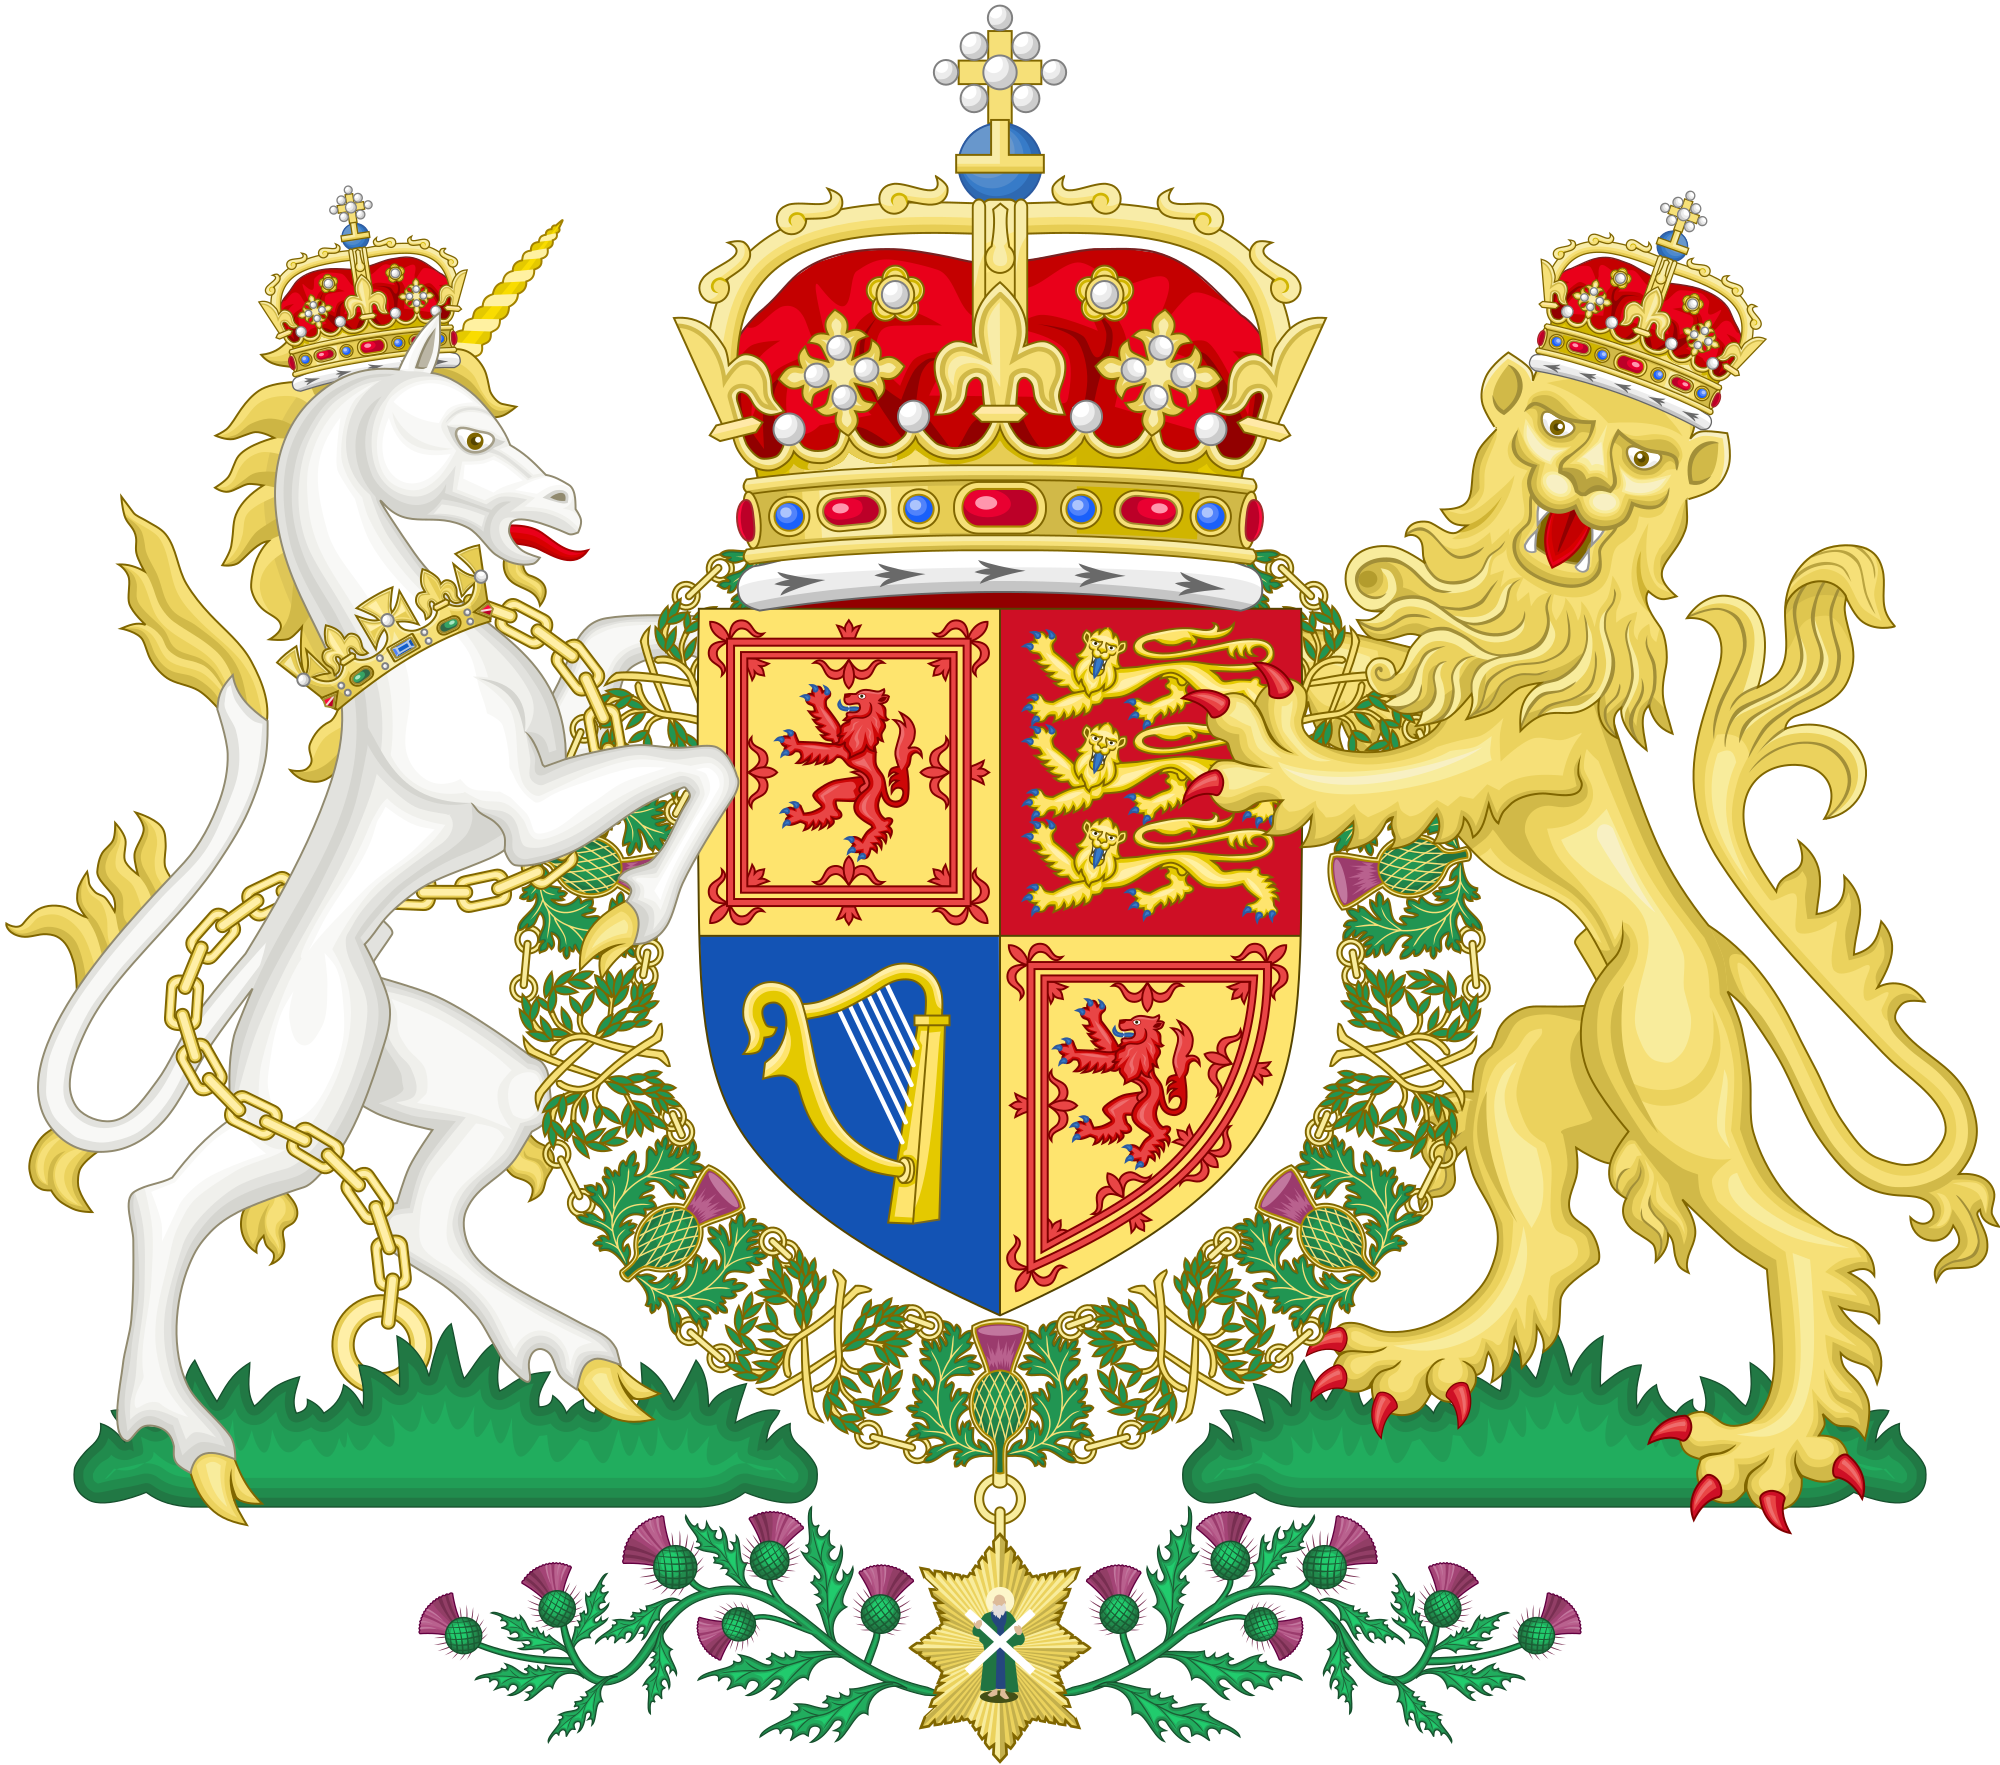 Scottish crown clipart clipart freeuse File:Royal Coat of Arms of the United Kingdom.svg - Wikimedia Commons clipart freeuse